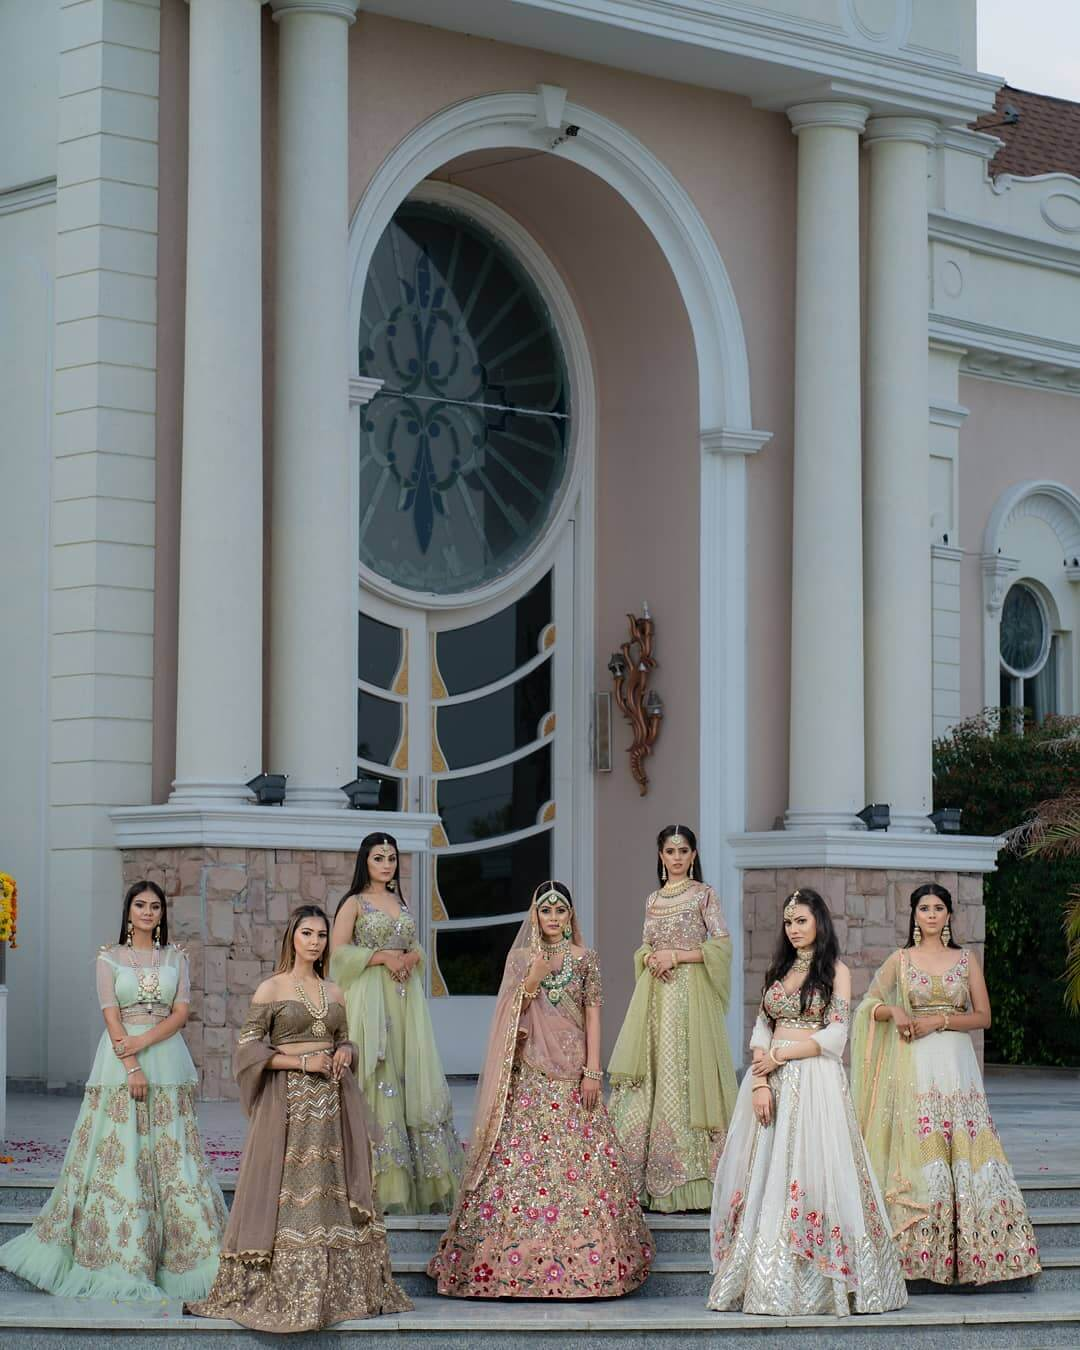 Photoshoot Poses For The Bride With Their BFFs With Royal Touch